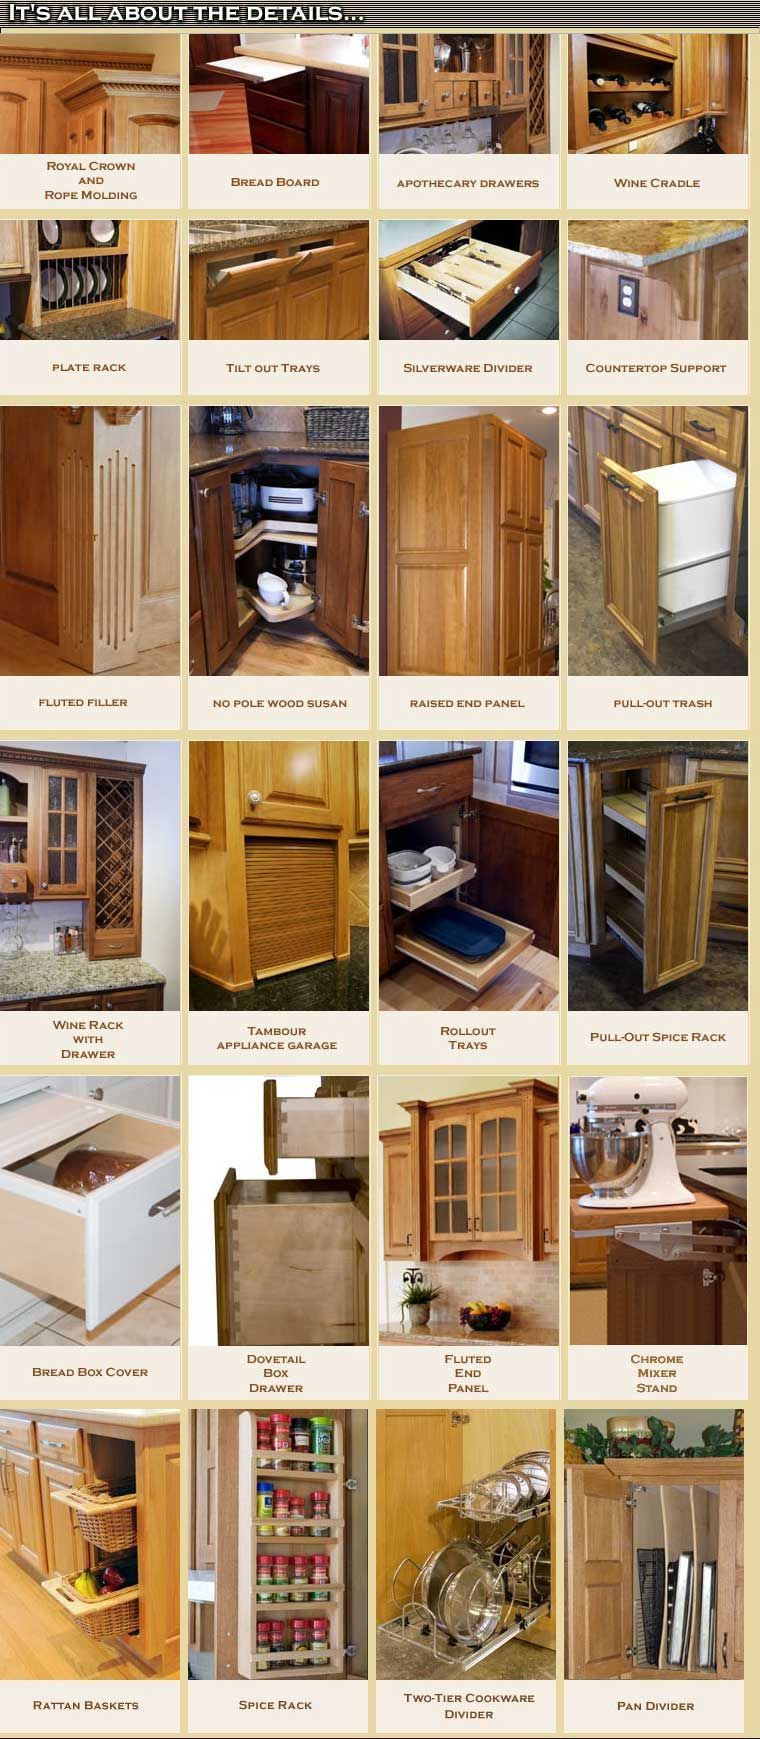 Koch And Company Inc Bring Quality Cabinets And Doors To You Kitchen Cabinets In Bathroom Family Room Remodel Quality Cabinets